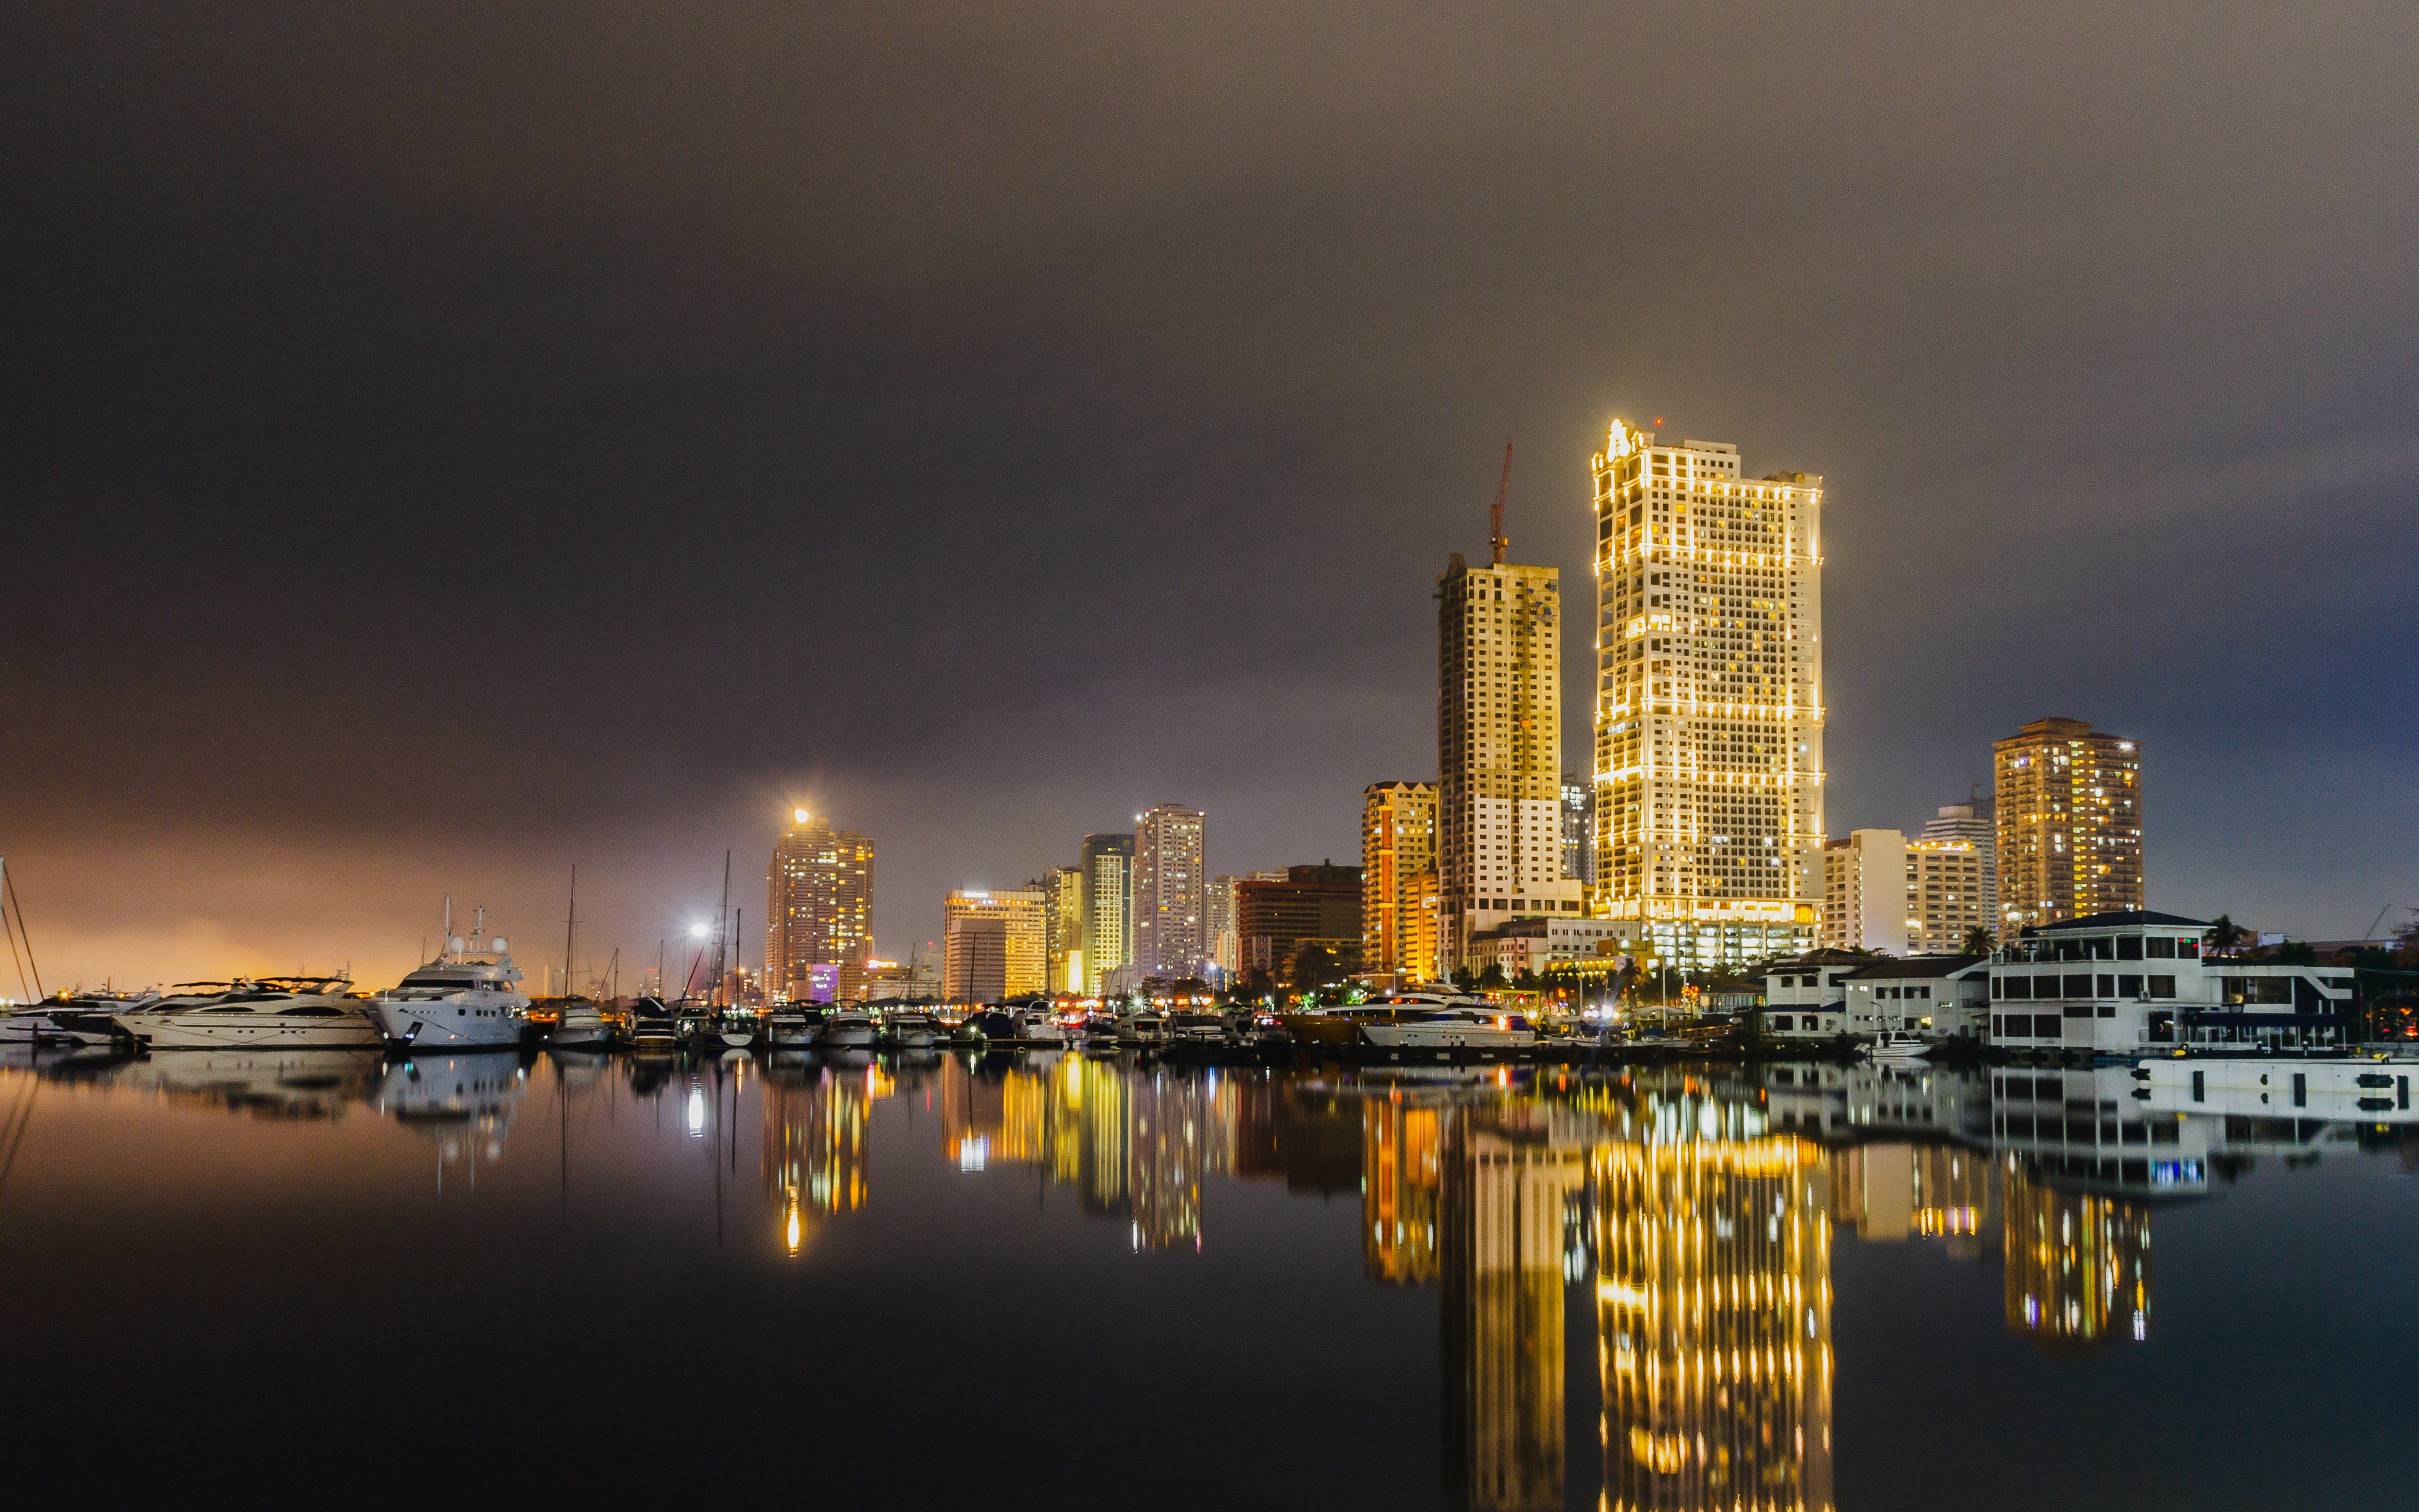 Manila Bay at night. The Philippines has huge economic potential.